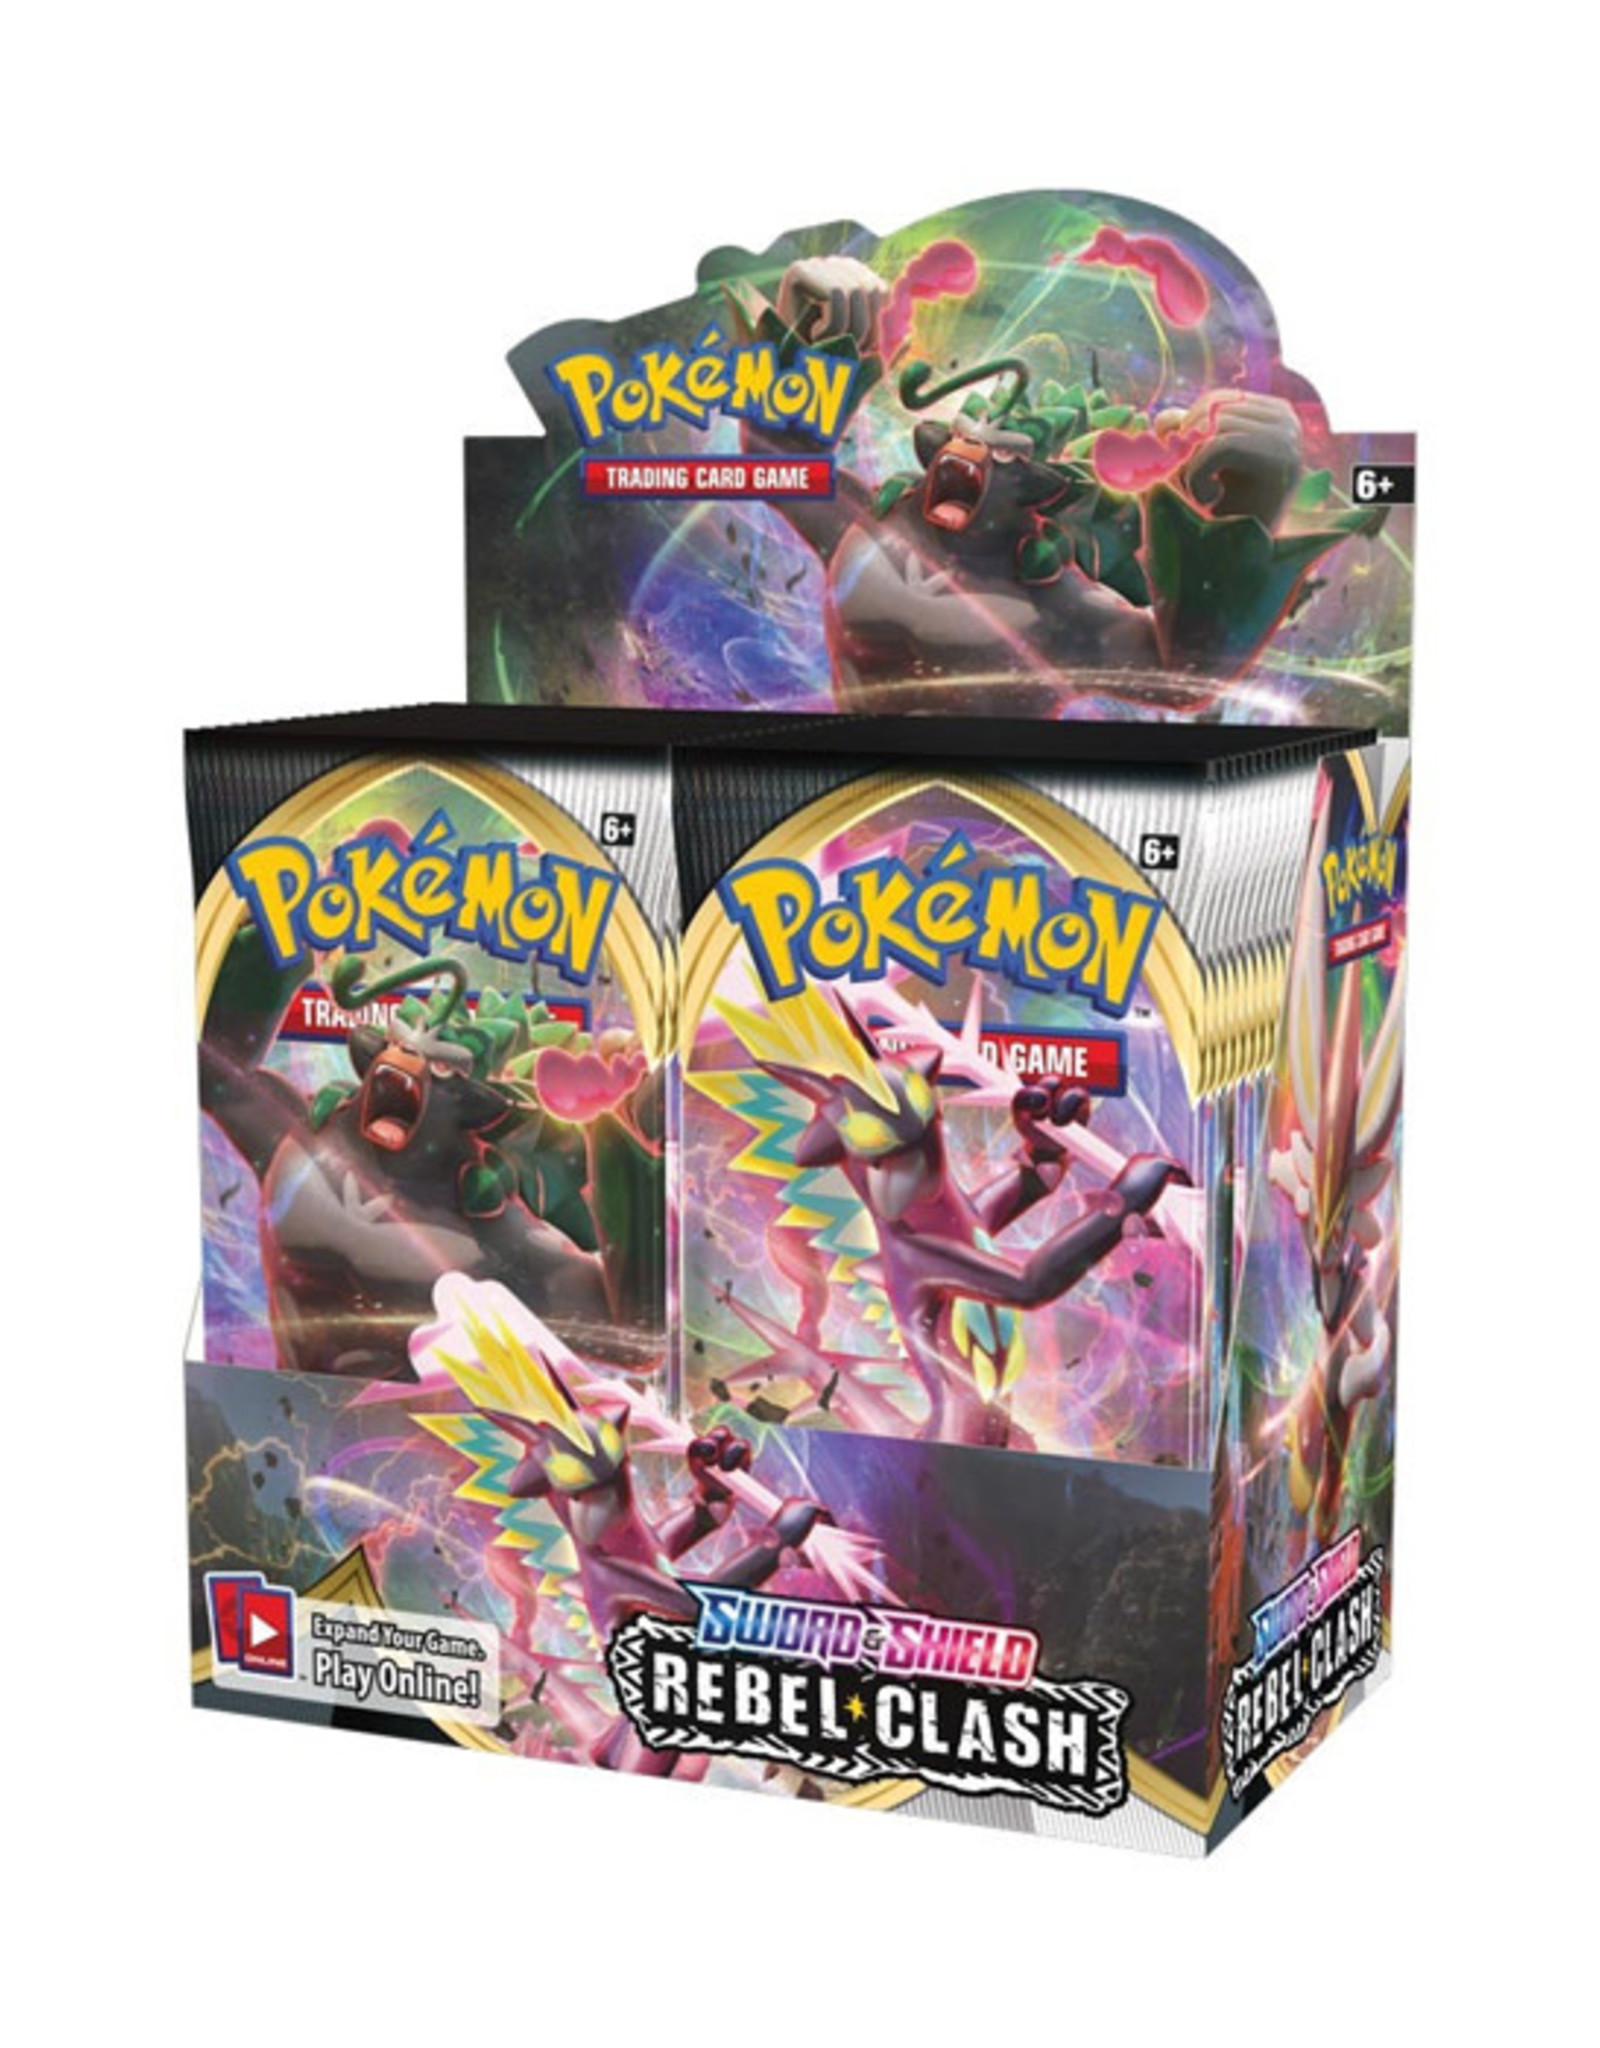 Pokemon Pokemon: Sword & Shield 2 - Rebel Clash - Booster Box